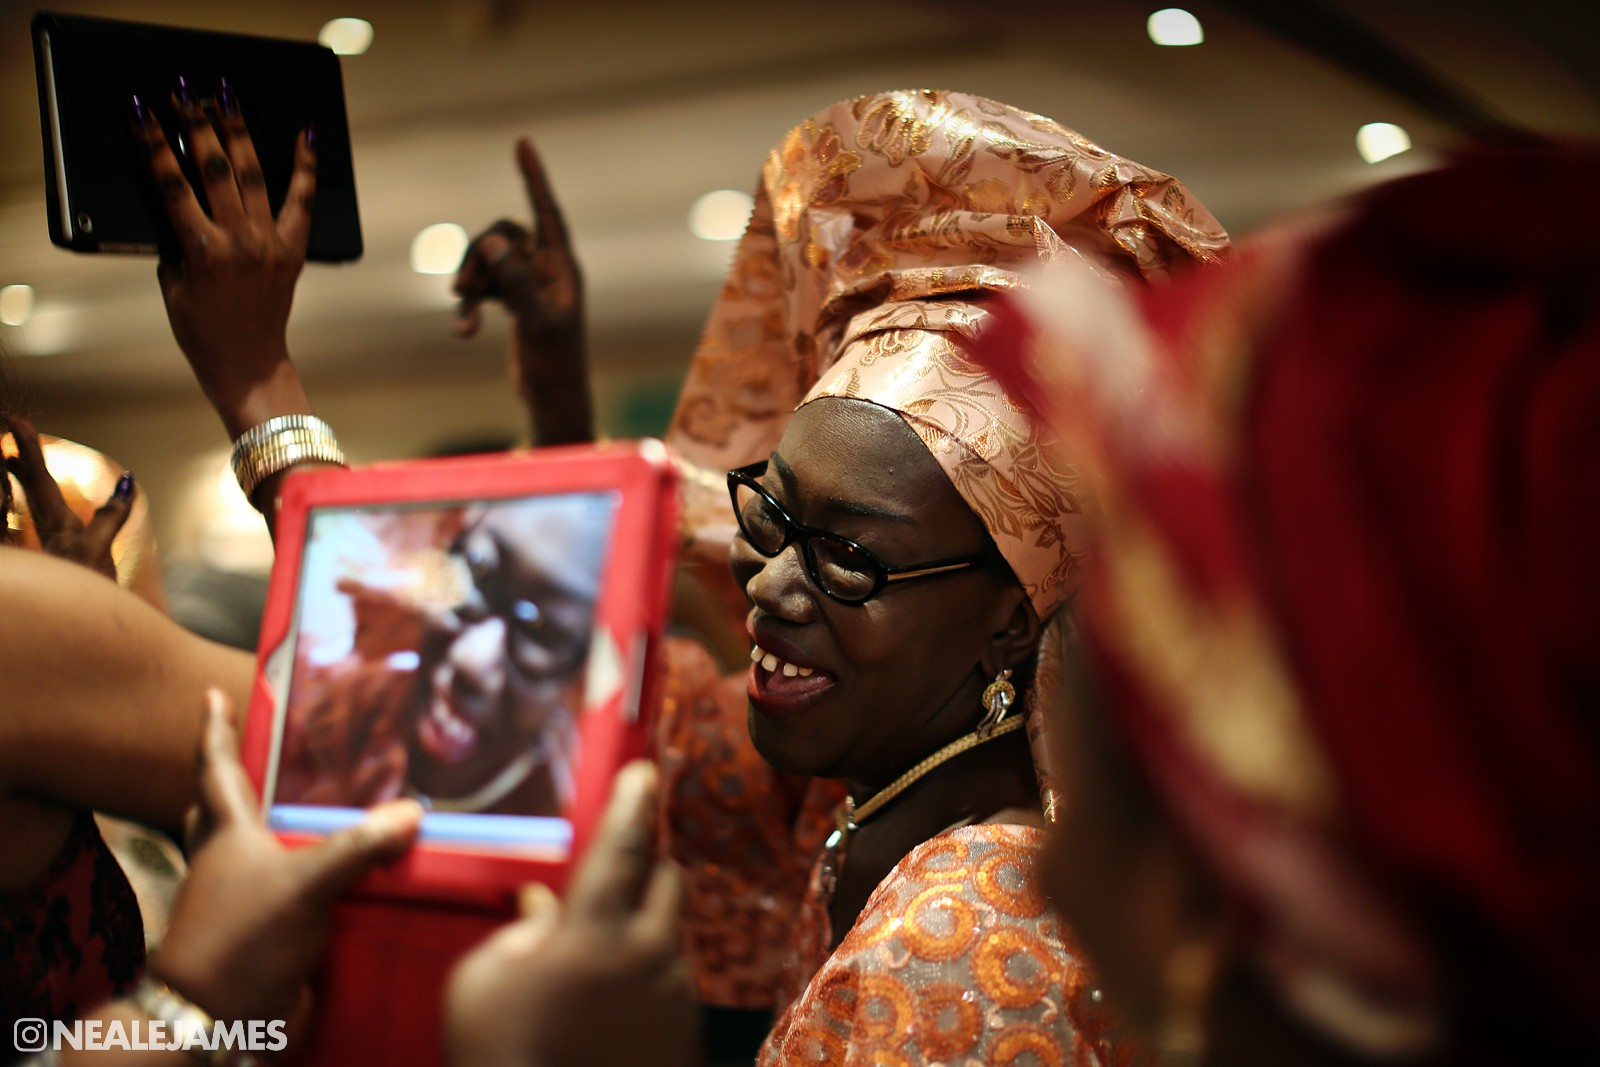 A colour photography of the party getting underway at this British Nigerian wedding